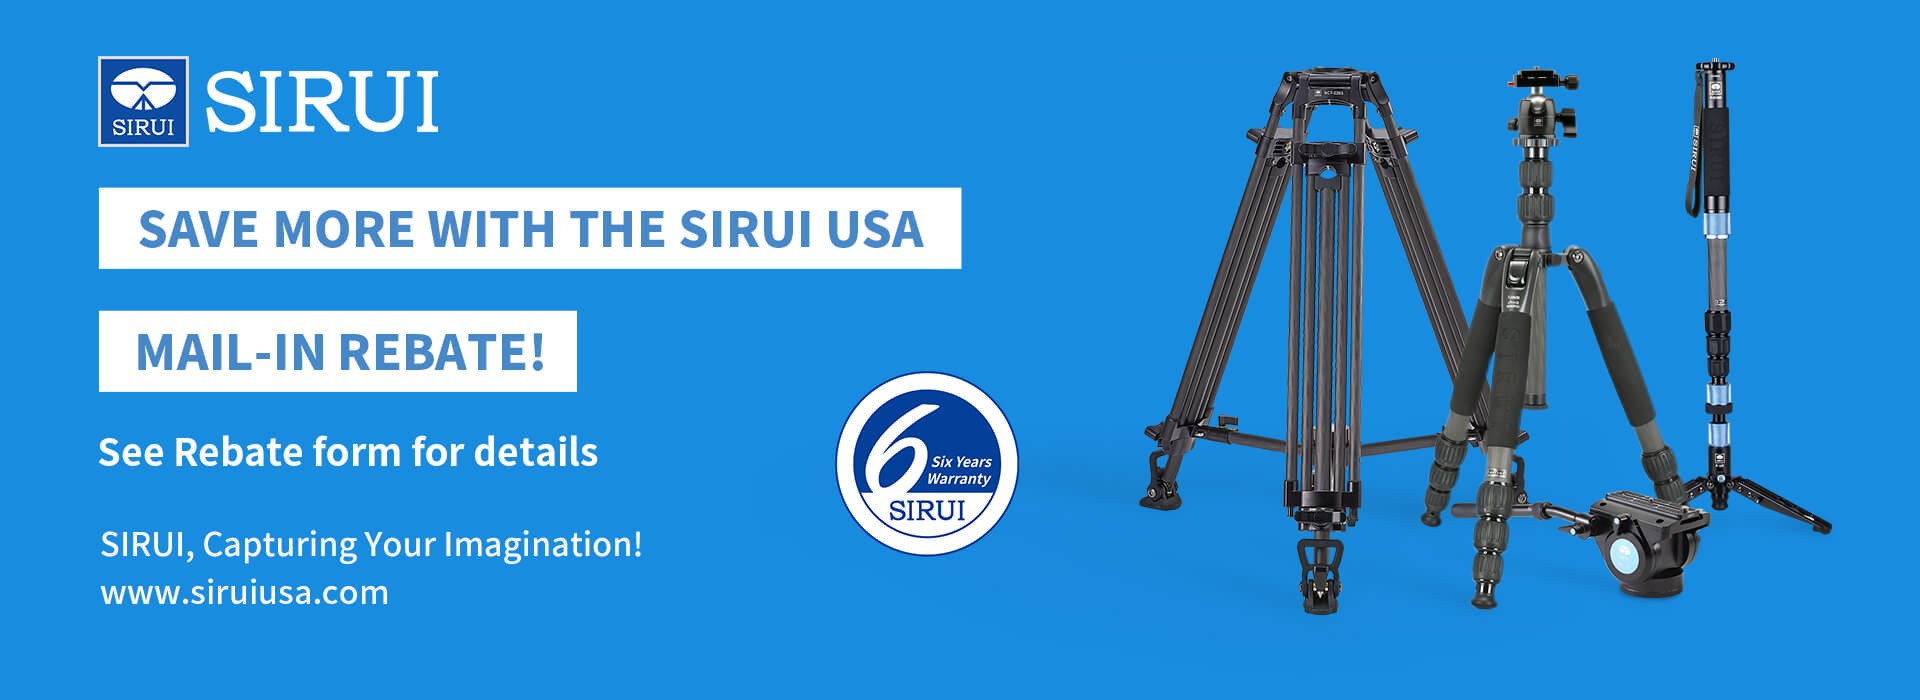 Sirui USA Rebate Program